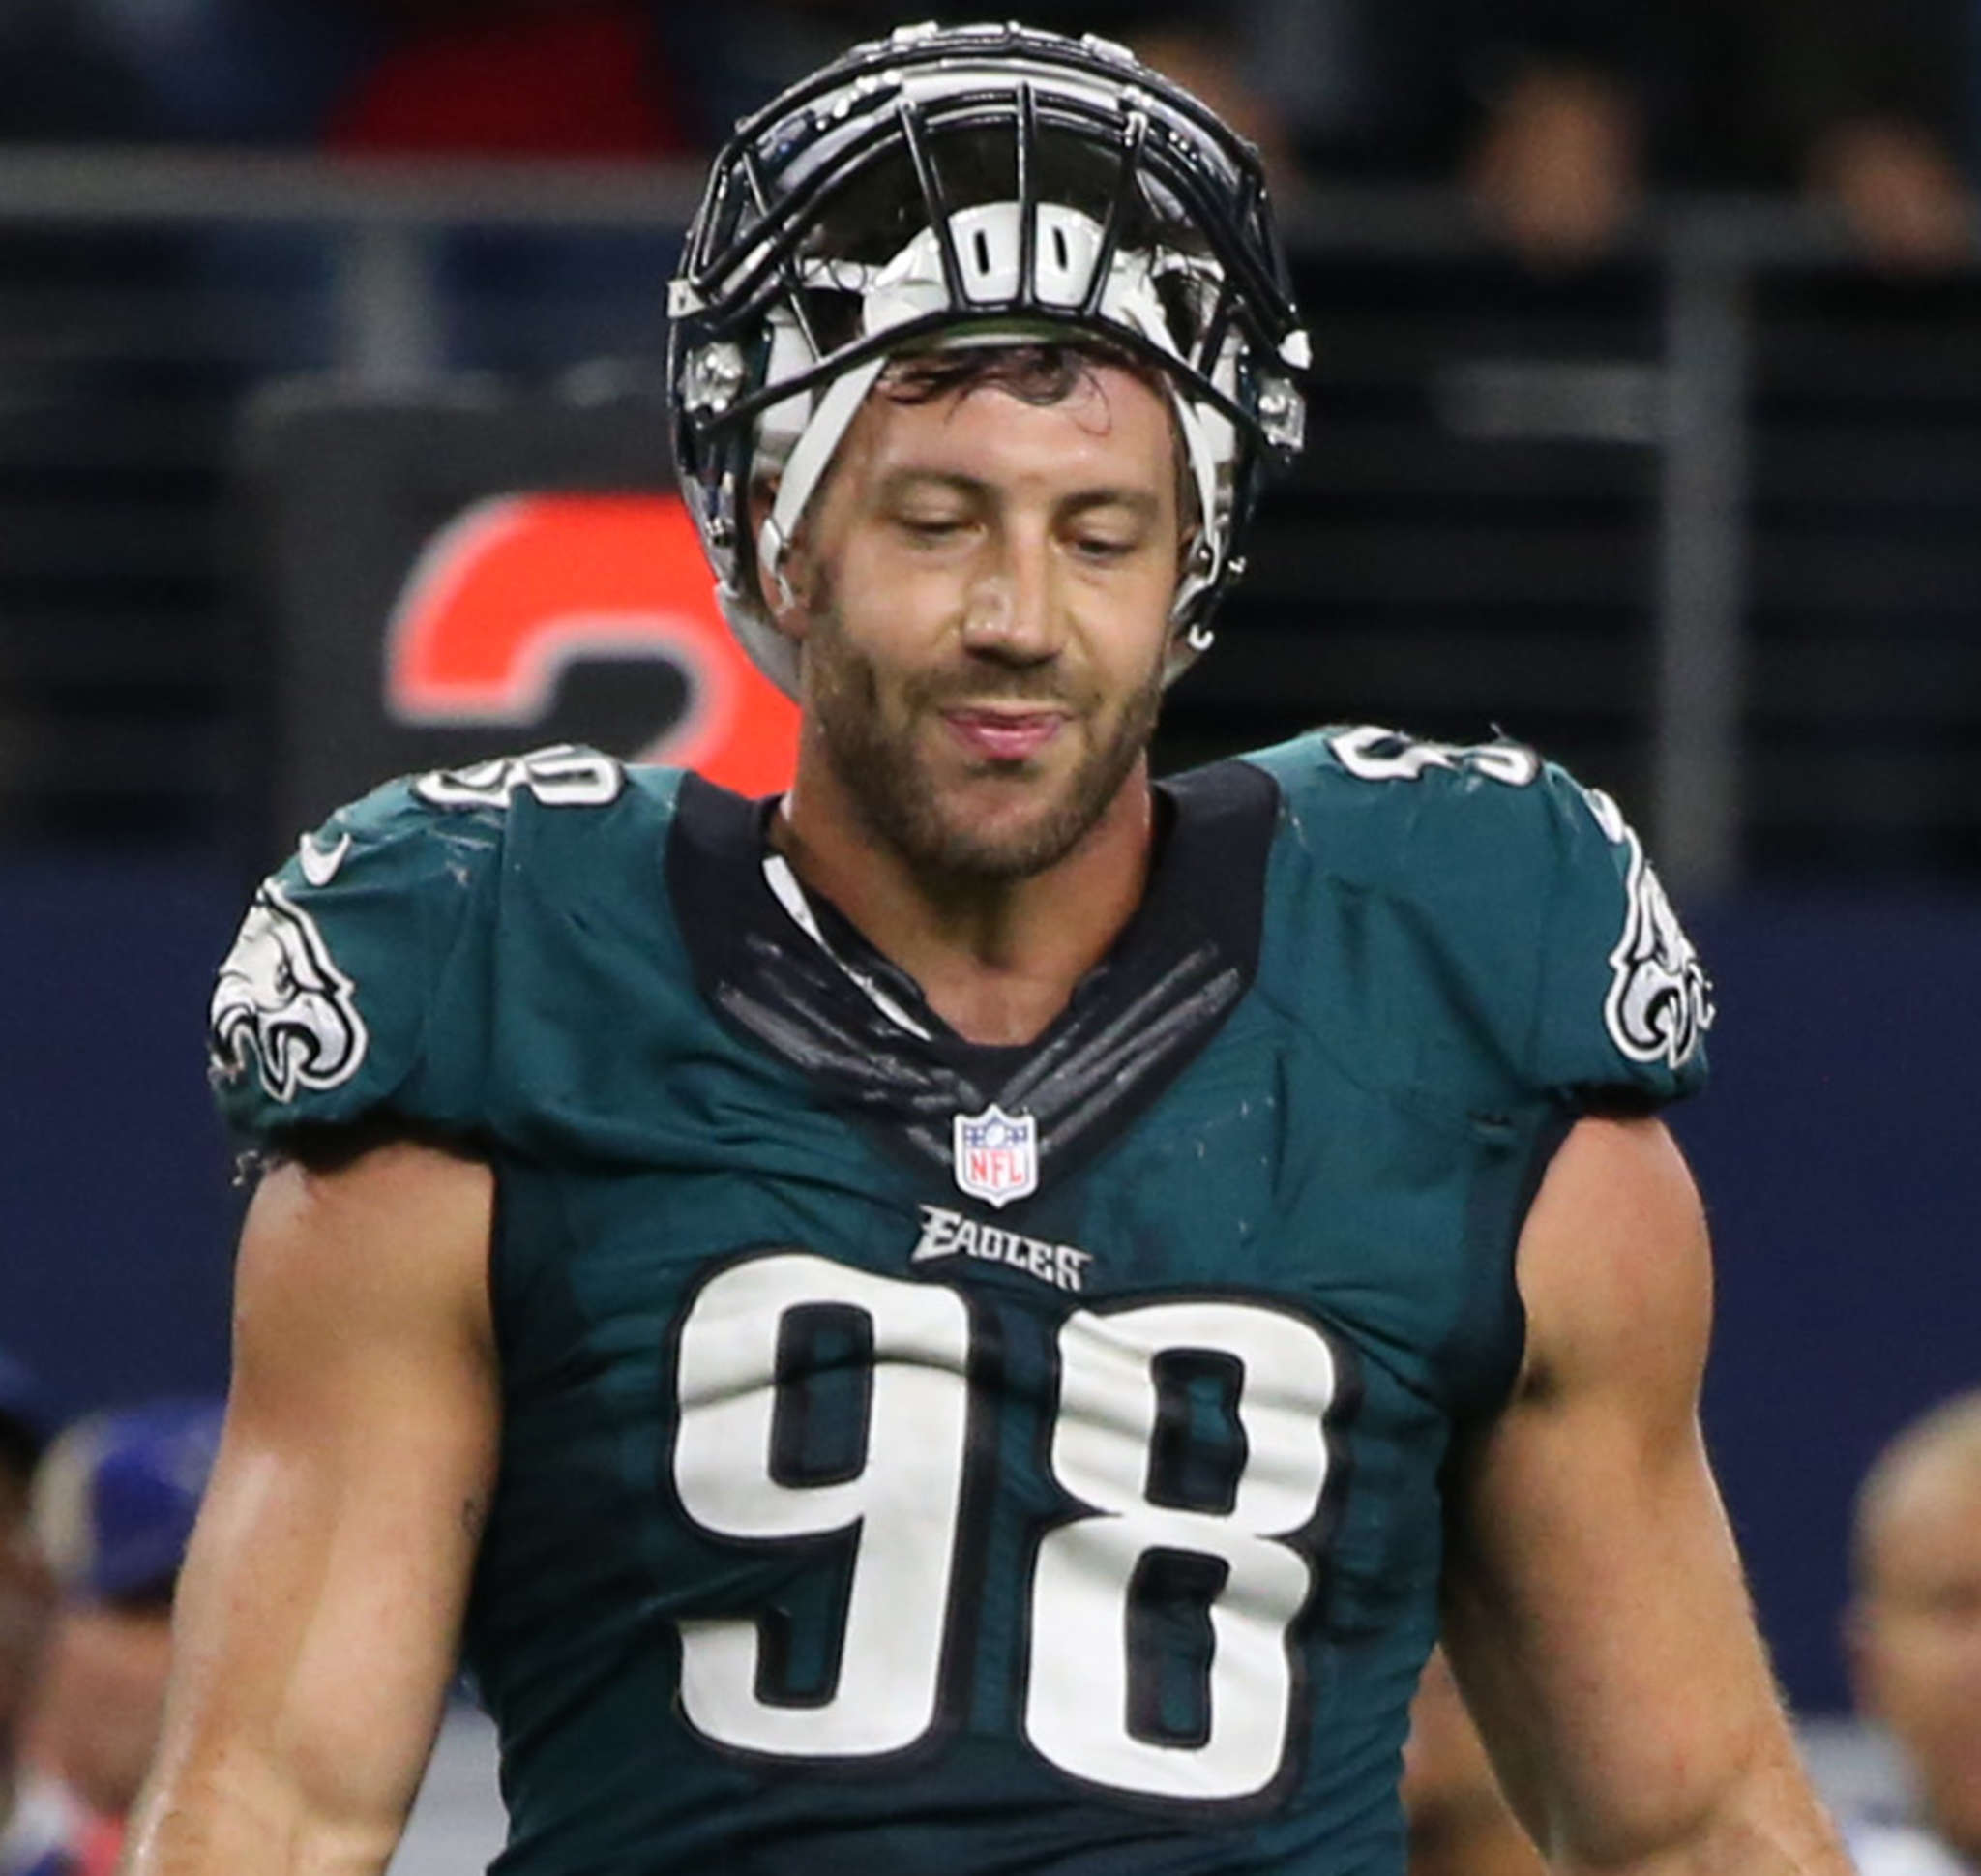 Linebacker Connor Barwin said the Eagles need to do a better job of disguising their blitzes.